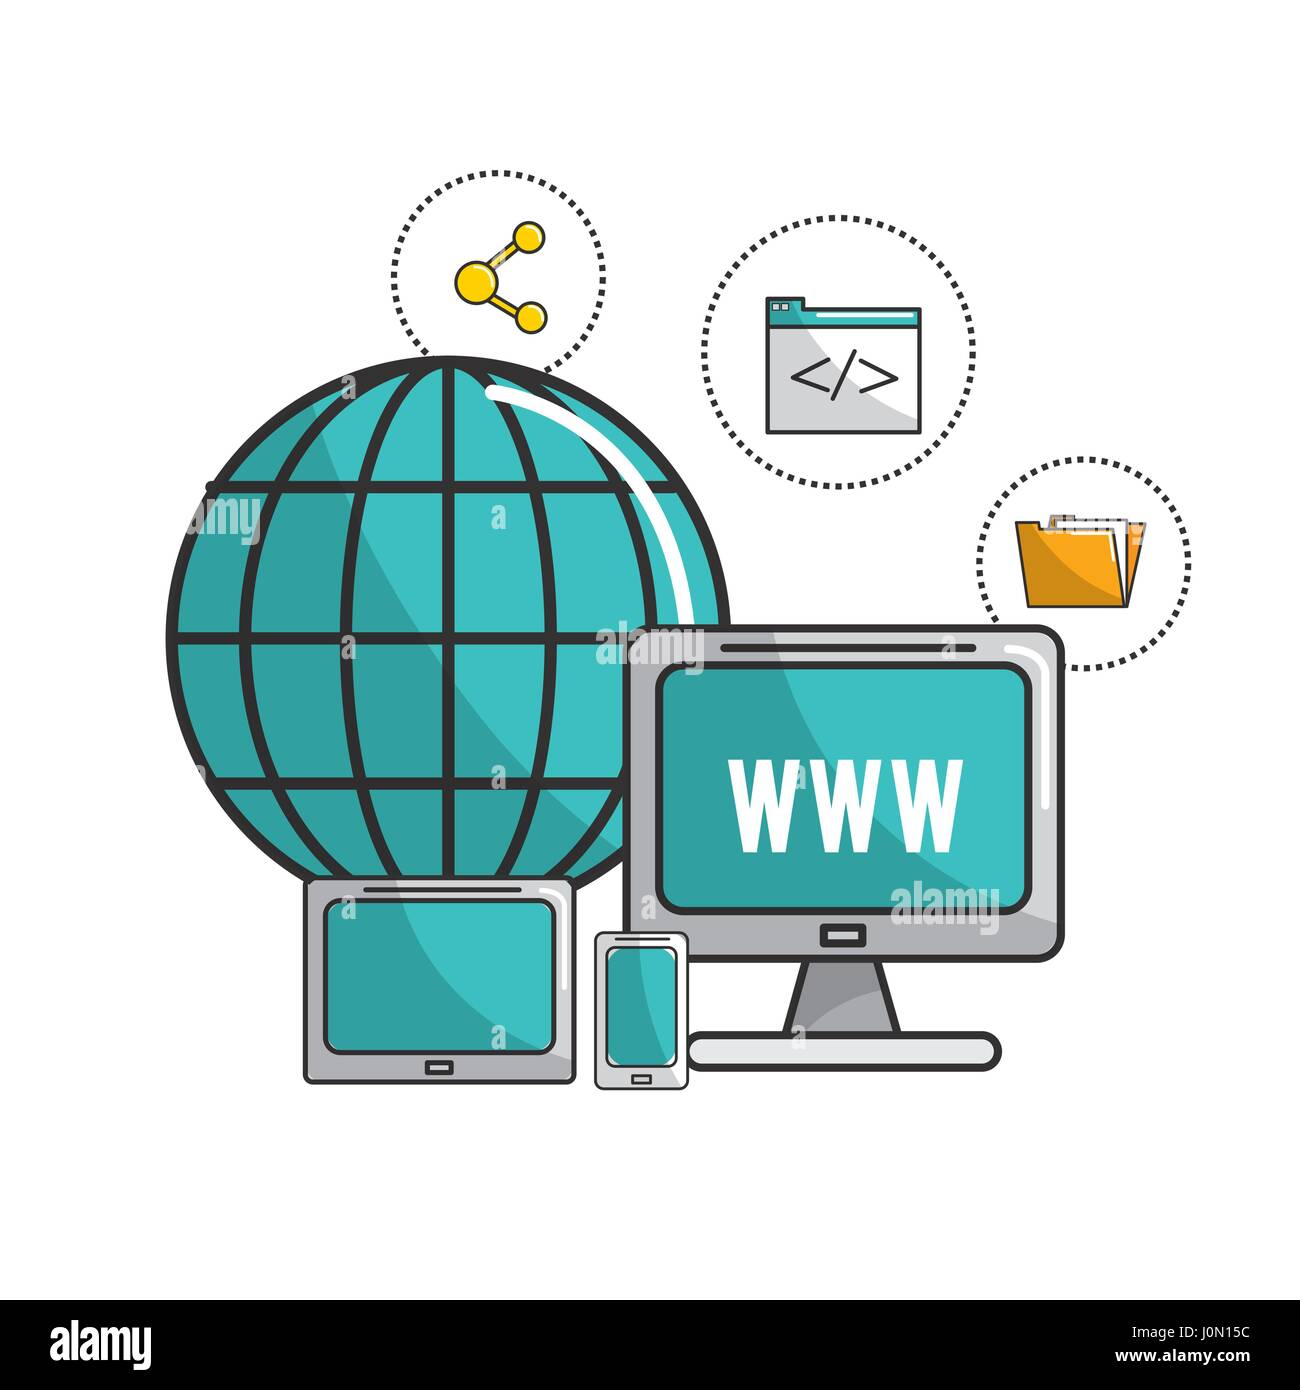 global computers connect data information - Stock Image